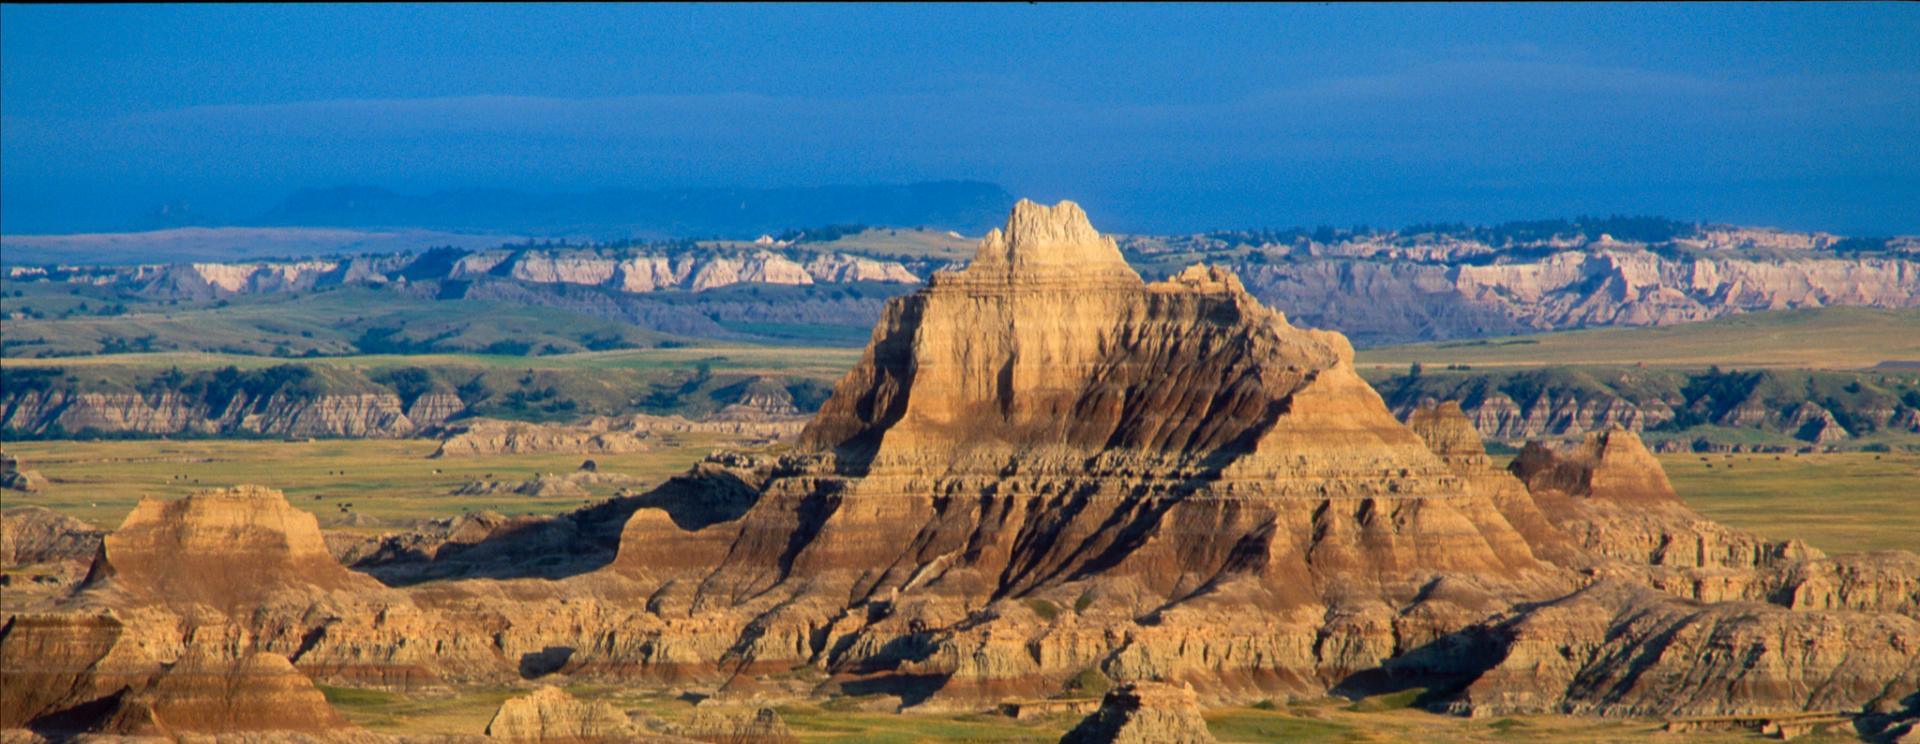 Badlands Region